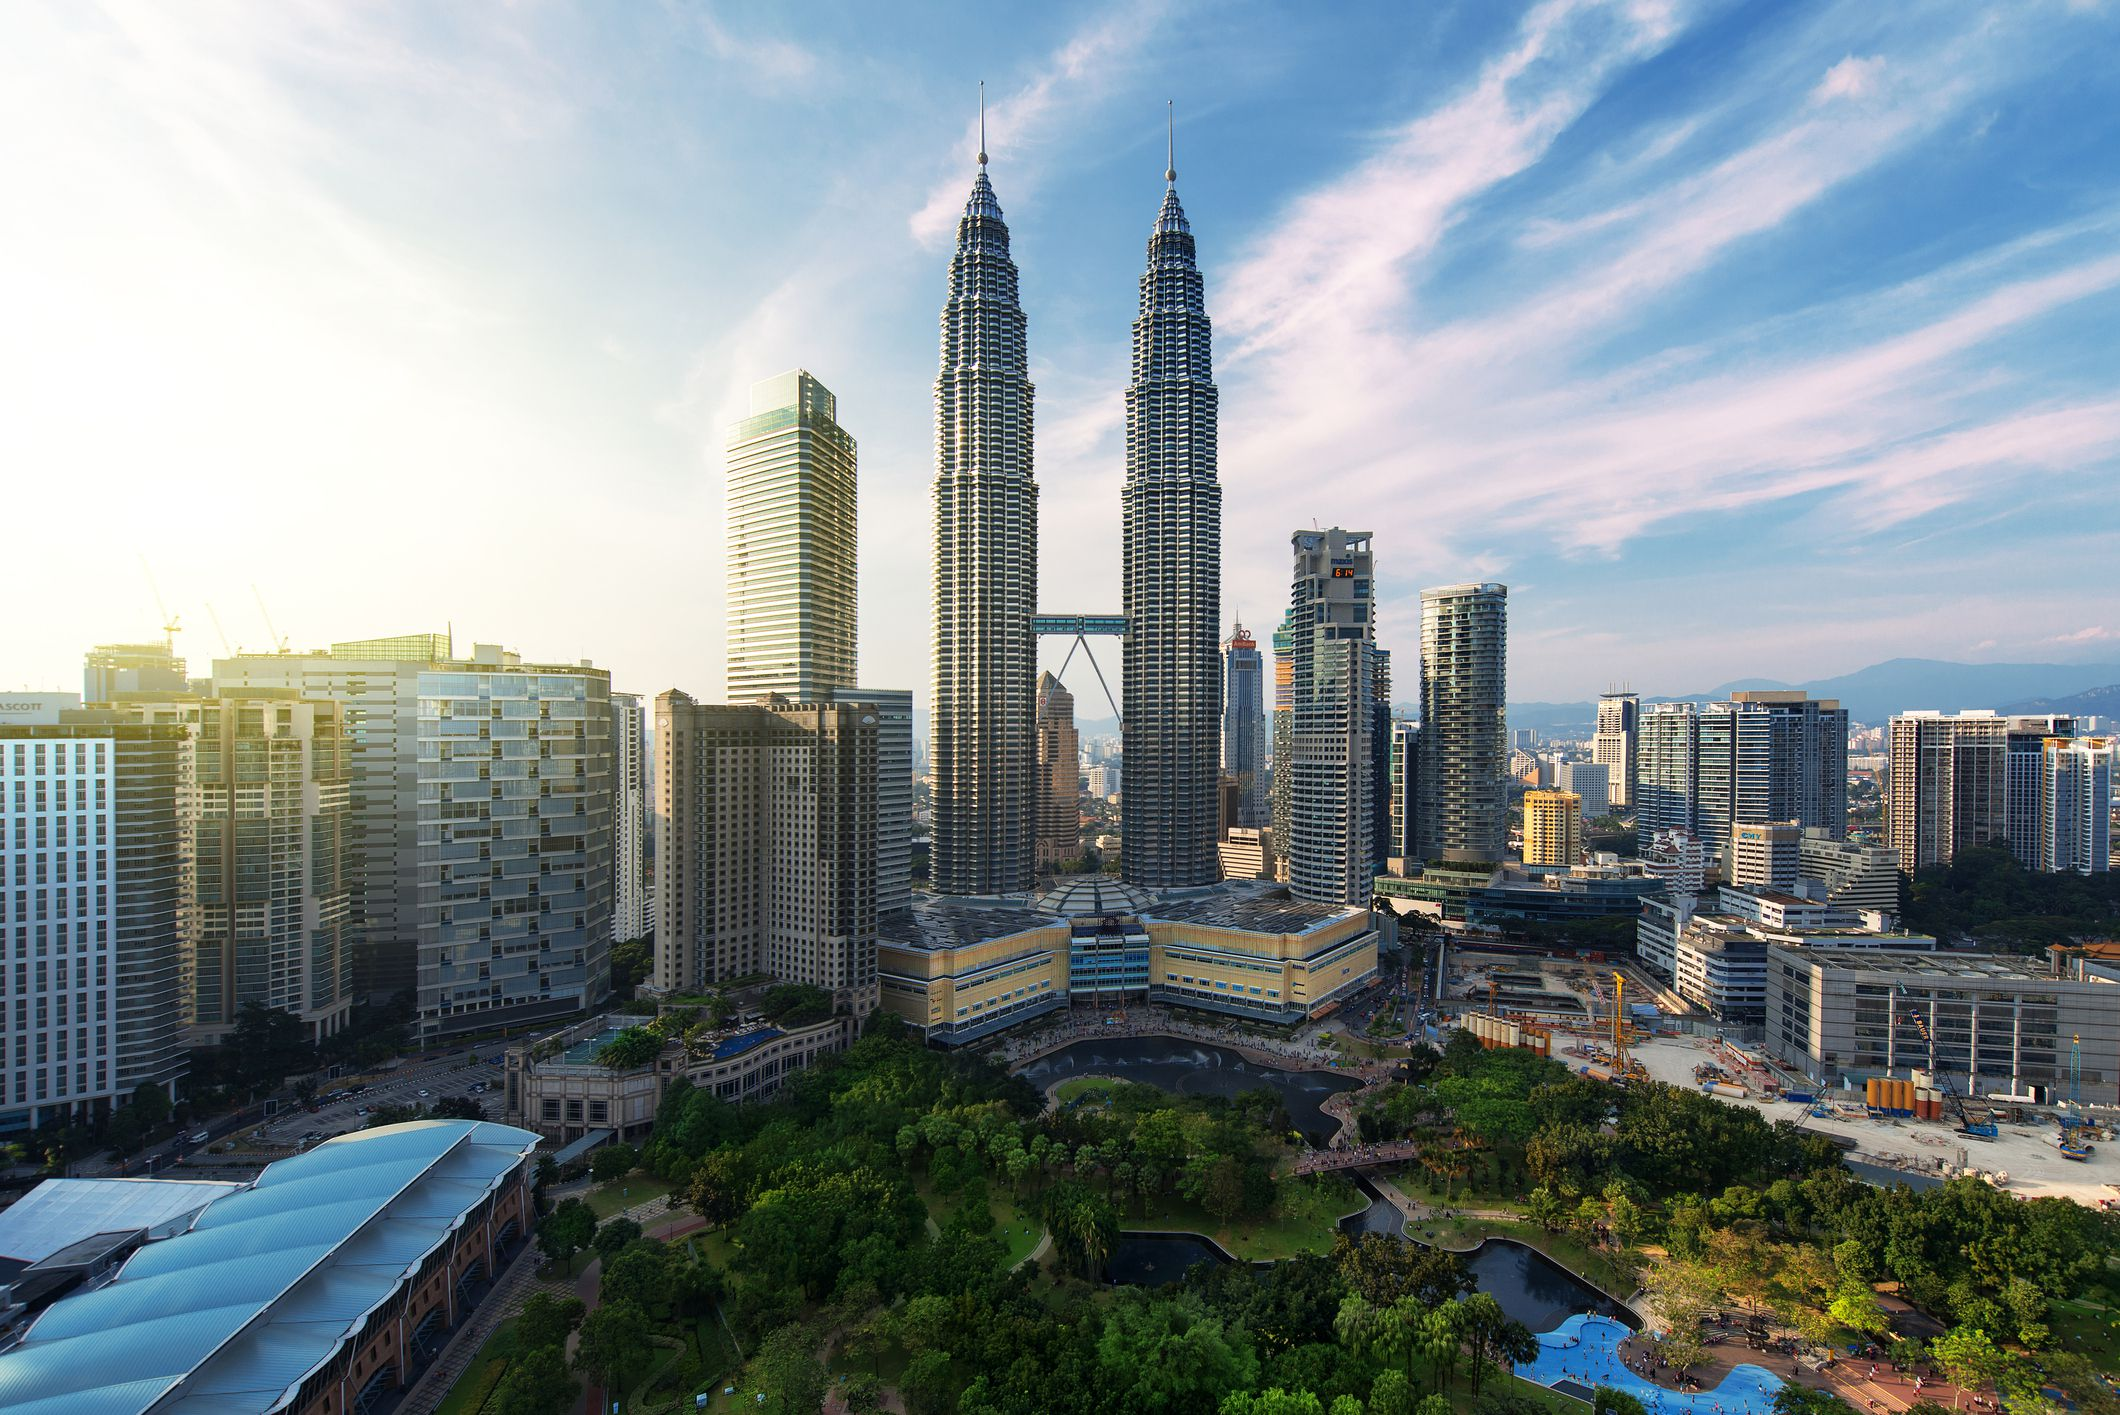 The Top 10 Things to Do in Kuala Lumpur